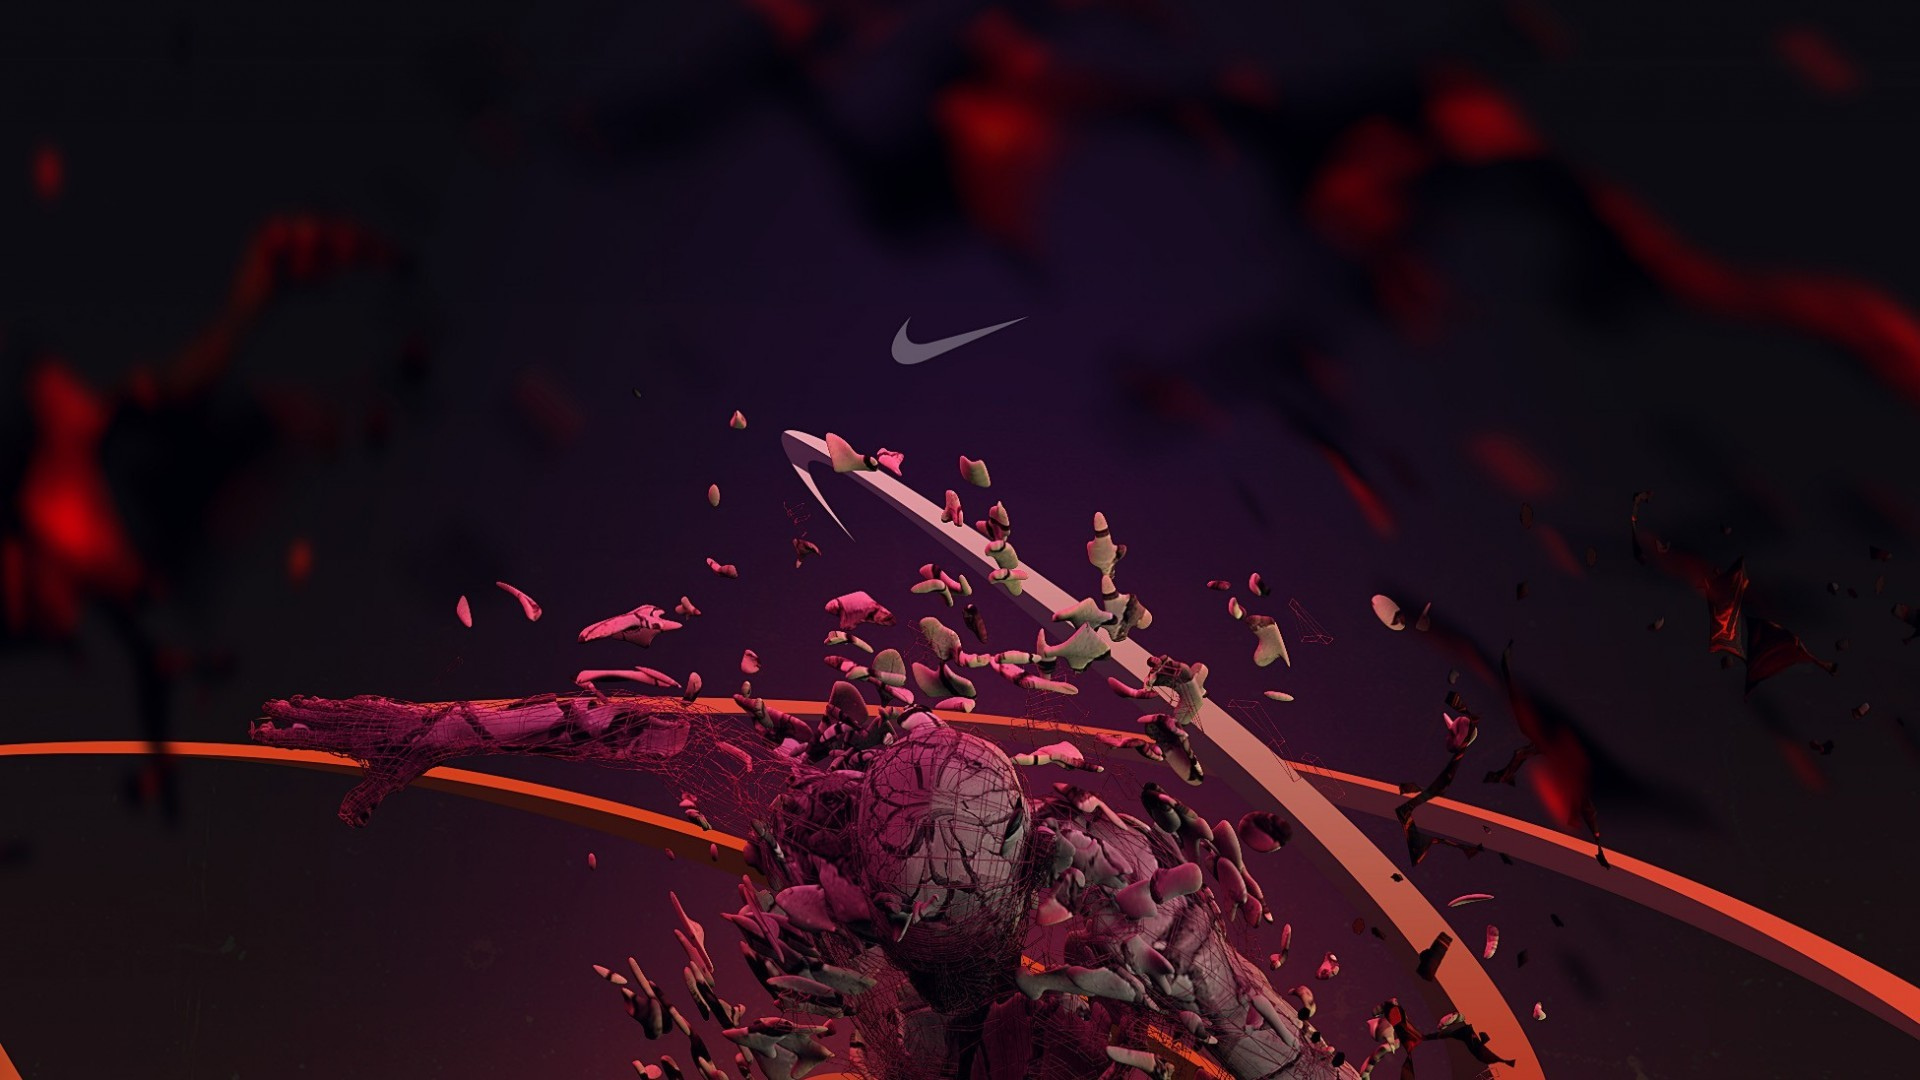 nike basketball wallpaper 58 images